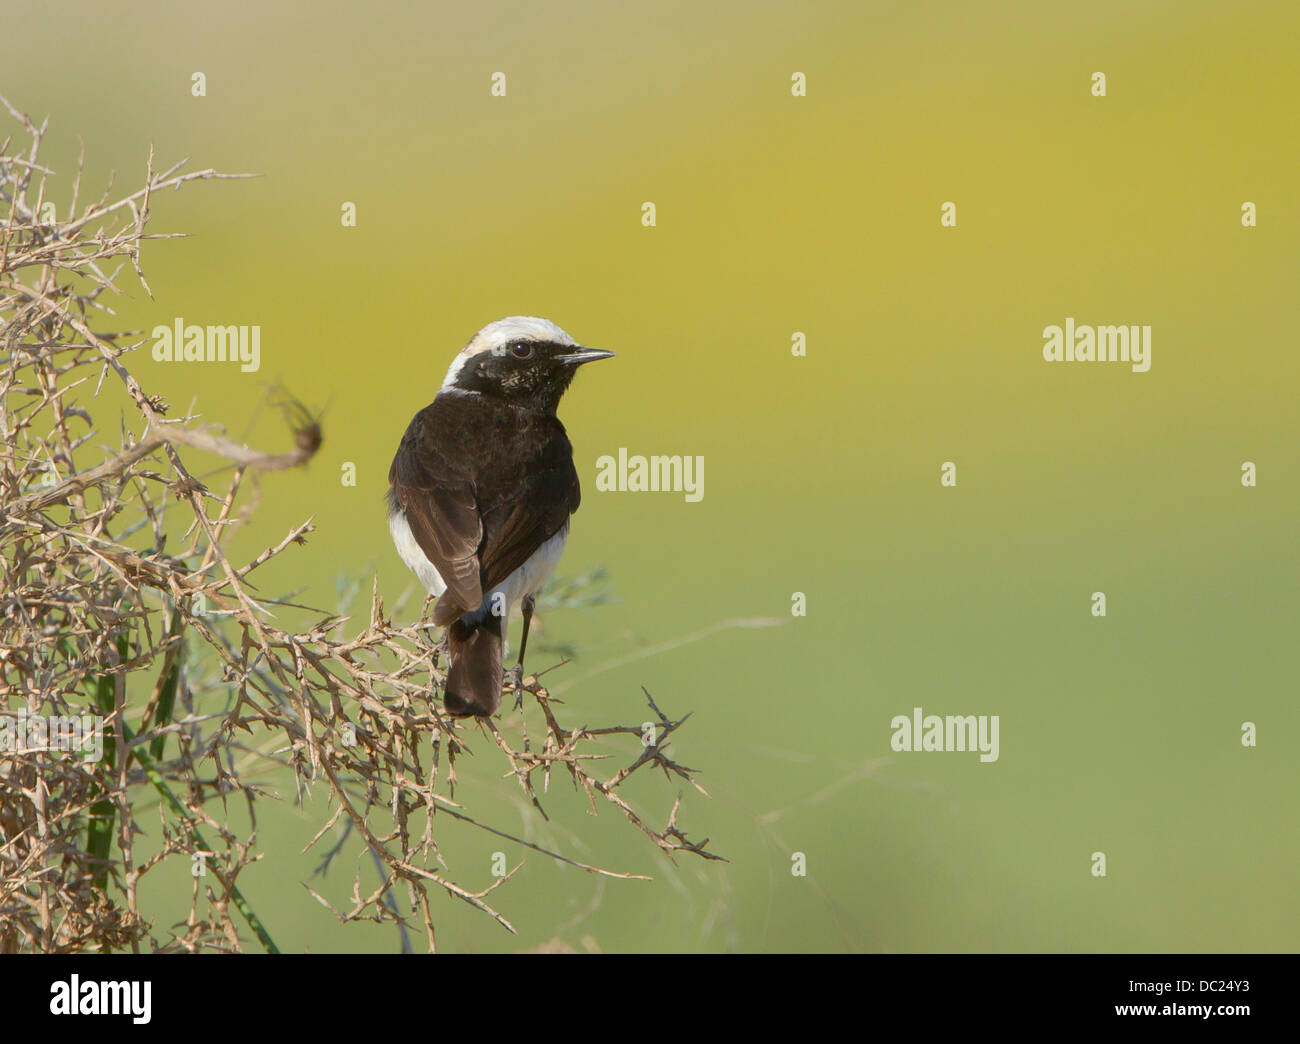 Cyprus Wheatear Oenanthe cypriaca perched on branch cyprus march Stock Photo